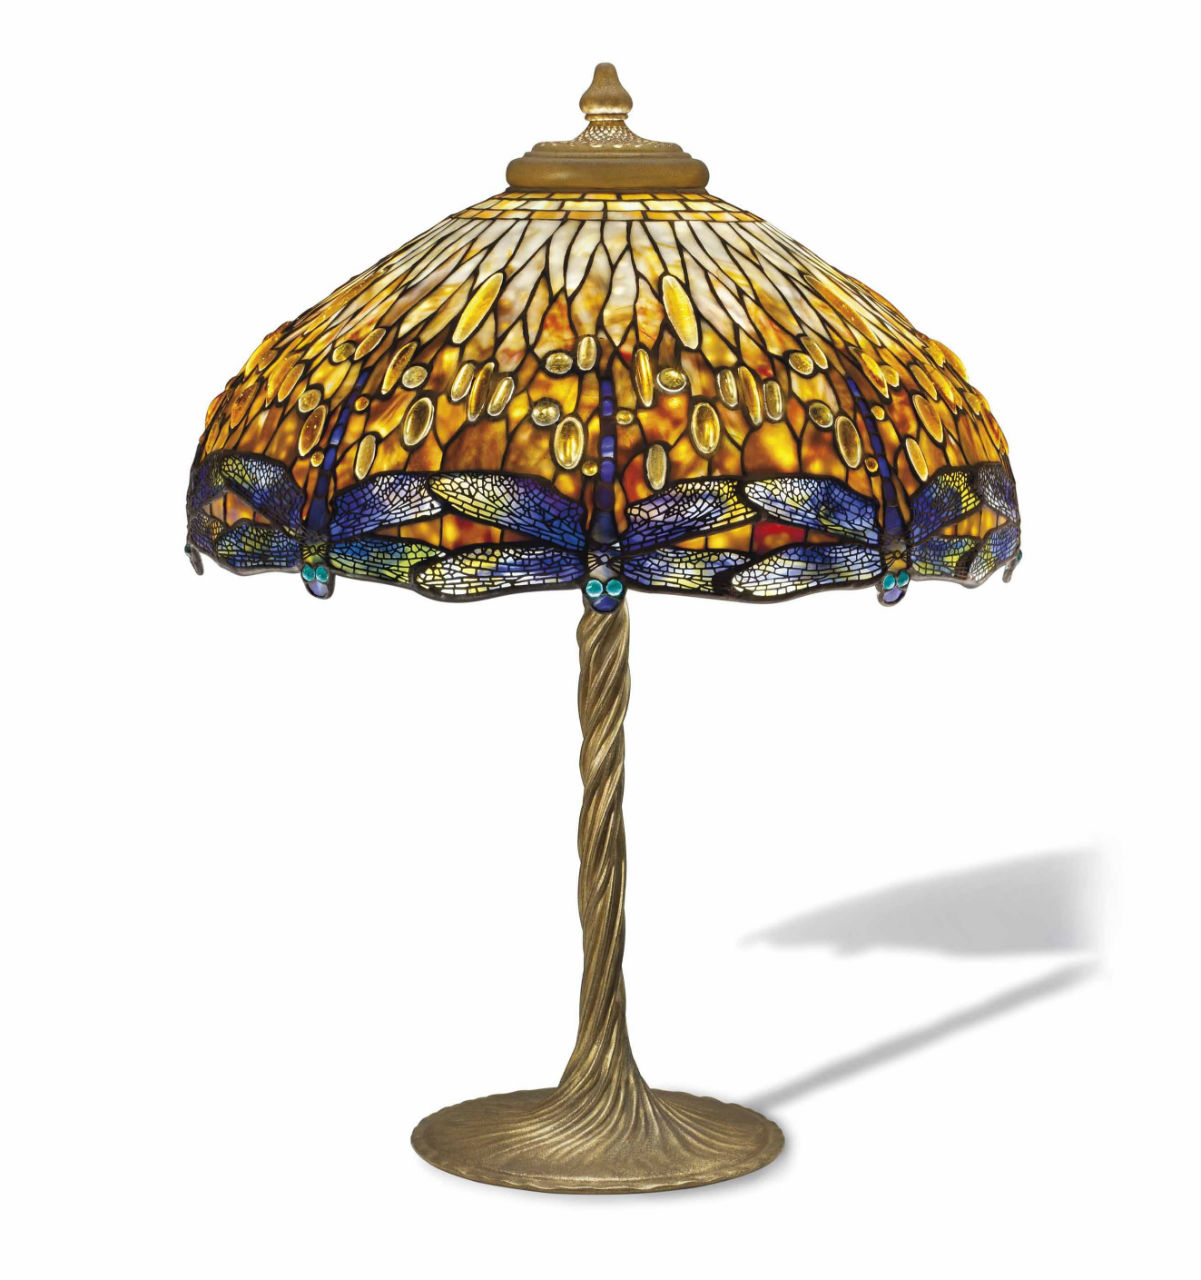 Tiffany Lamp Png - Tiffany lamps hold value through dark economic turns